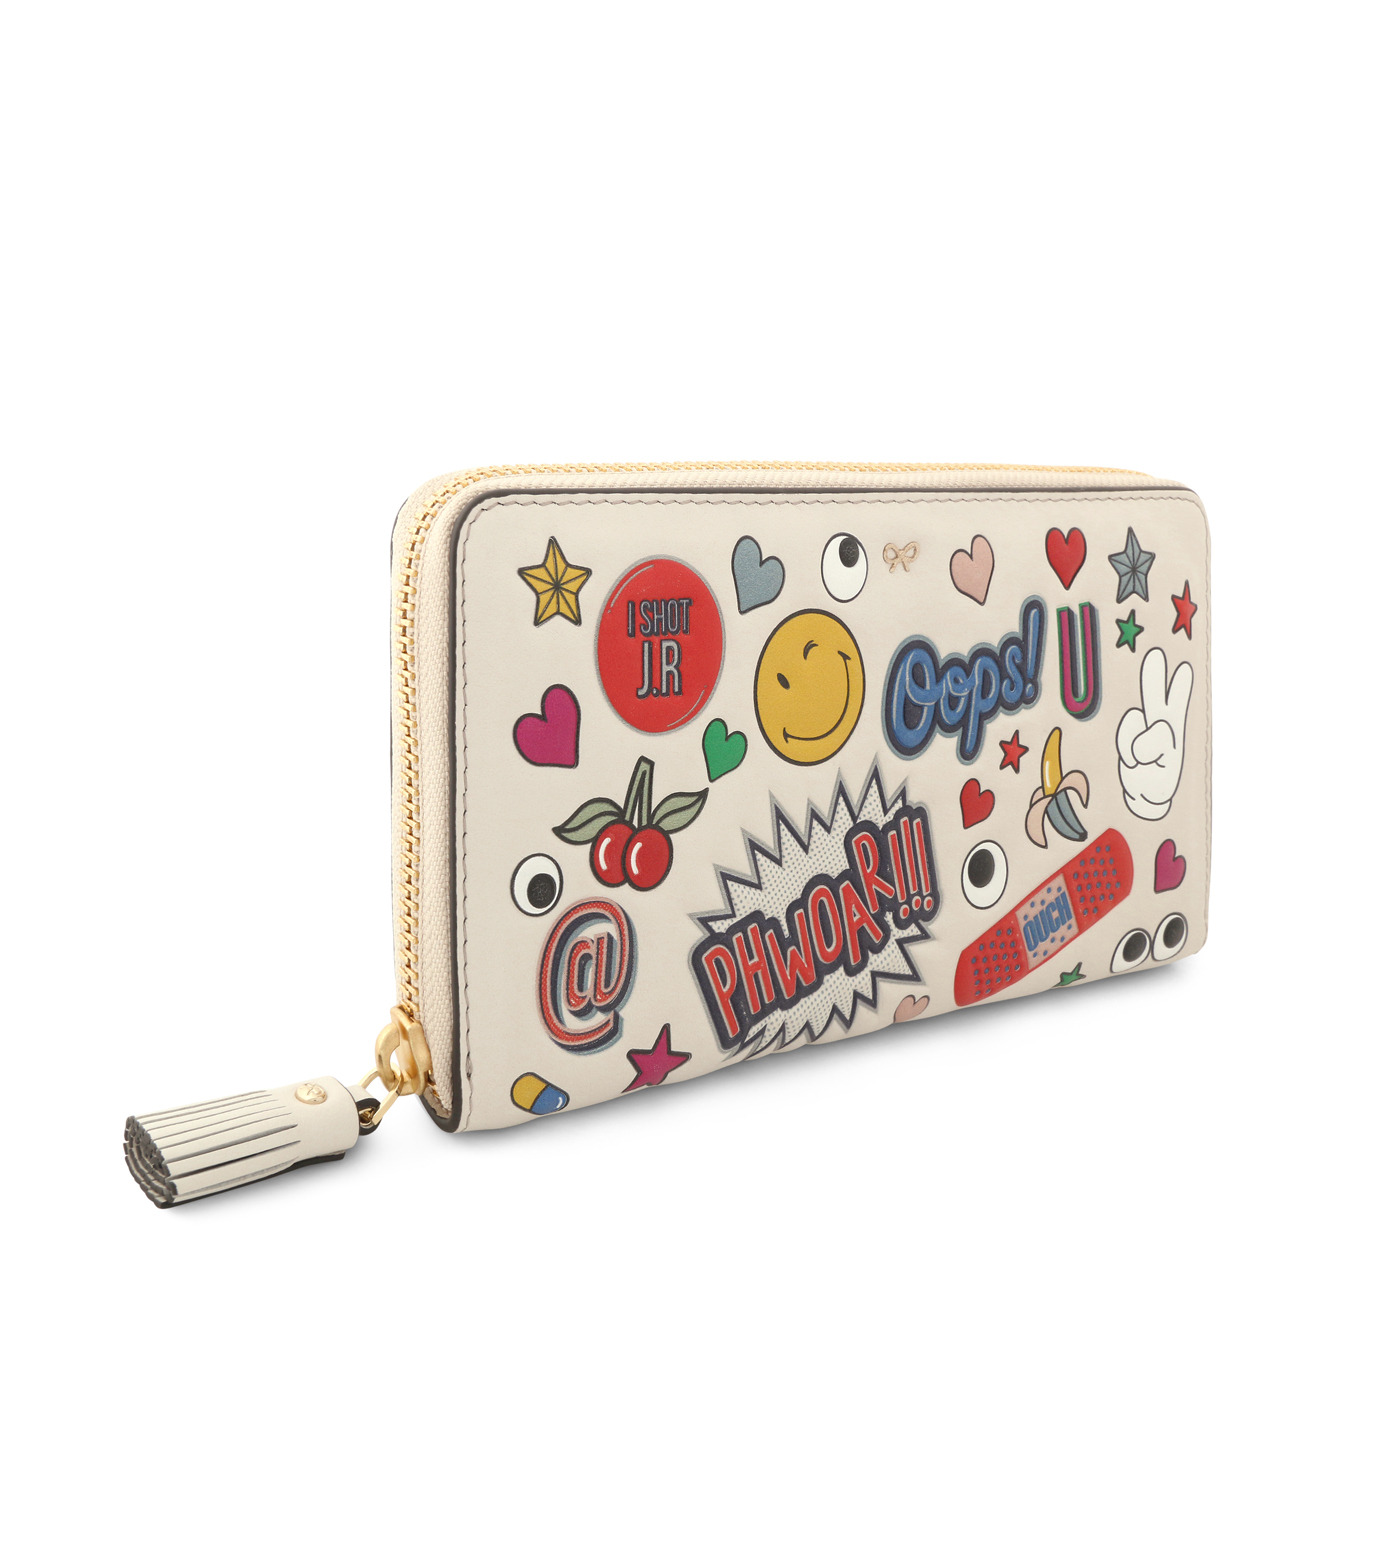 Anya Hindmarch(アニヤハインドマーチ)のLarge Zip Round Wallet All Over Wink-WHITE-924306-5 拡大詳細画像2